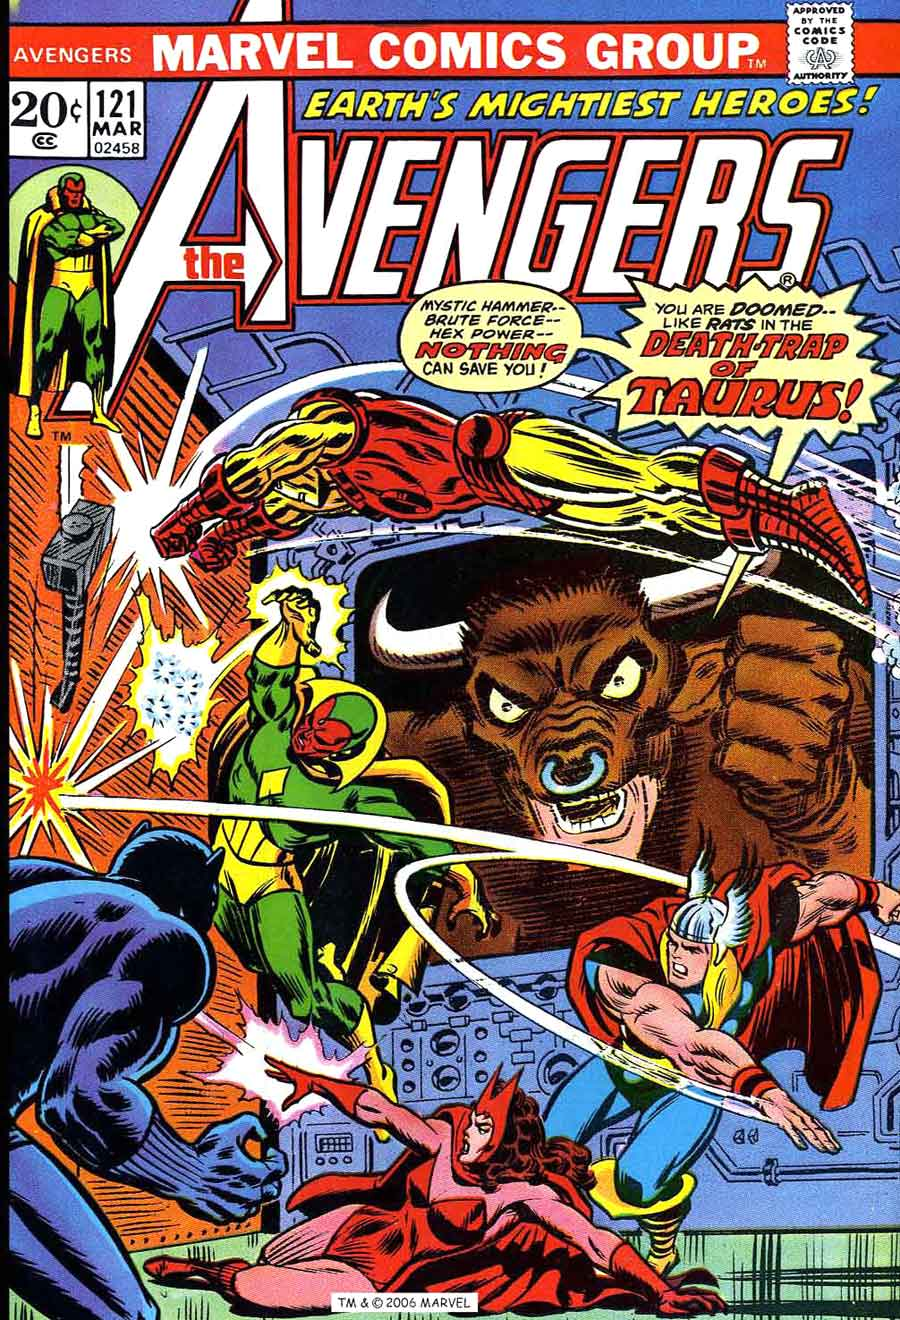 Avengers v1 #1 marvel comic book cover